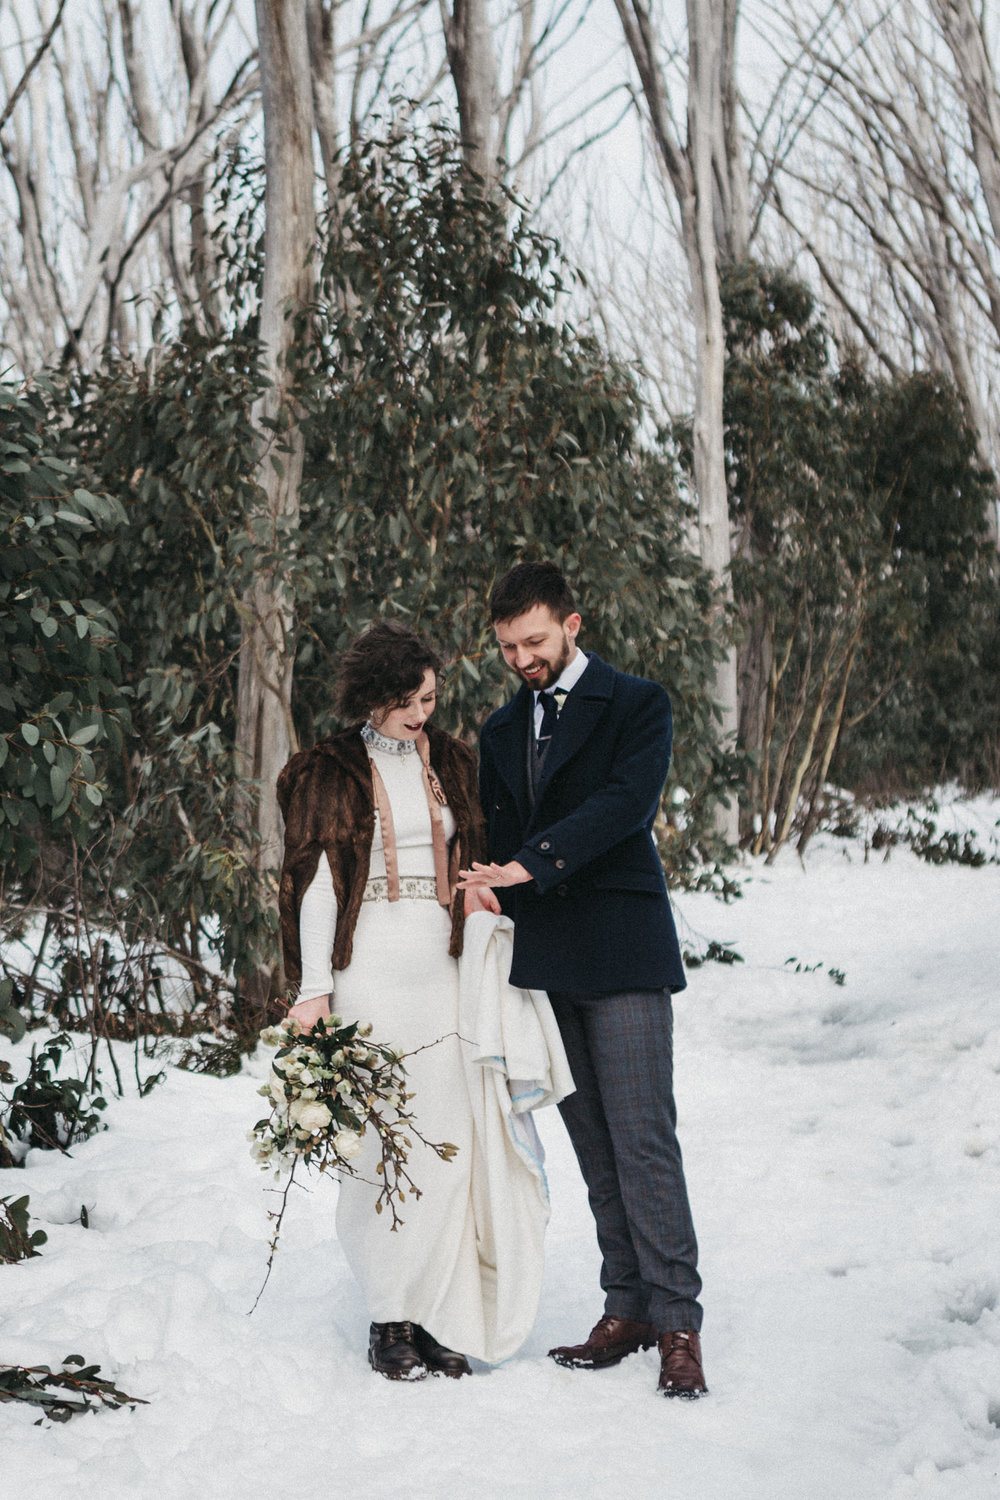 Winter_Elopement_Amie_Nick_Anna_Taylor_169-766A1719.jpg